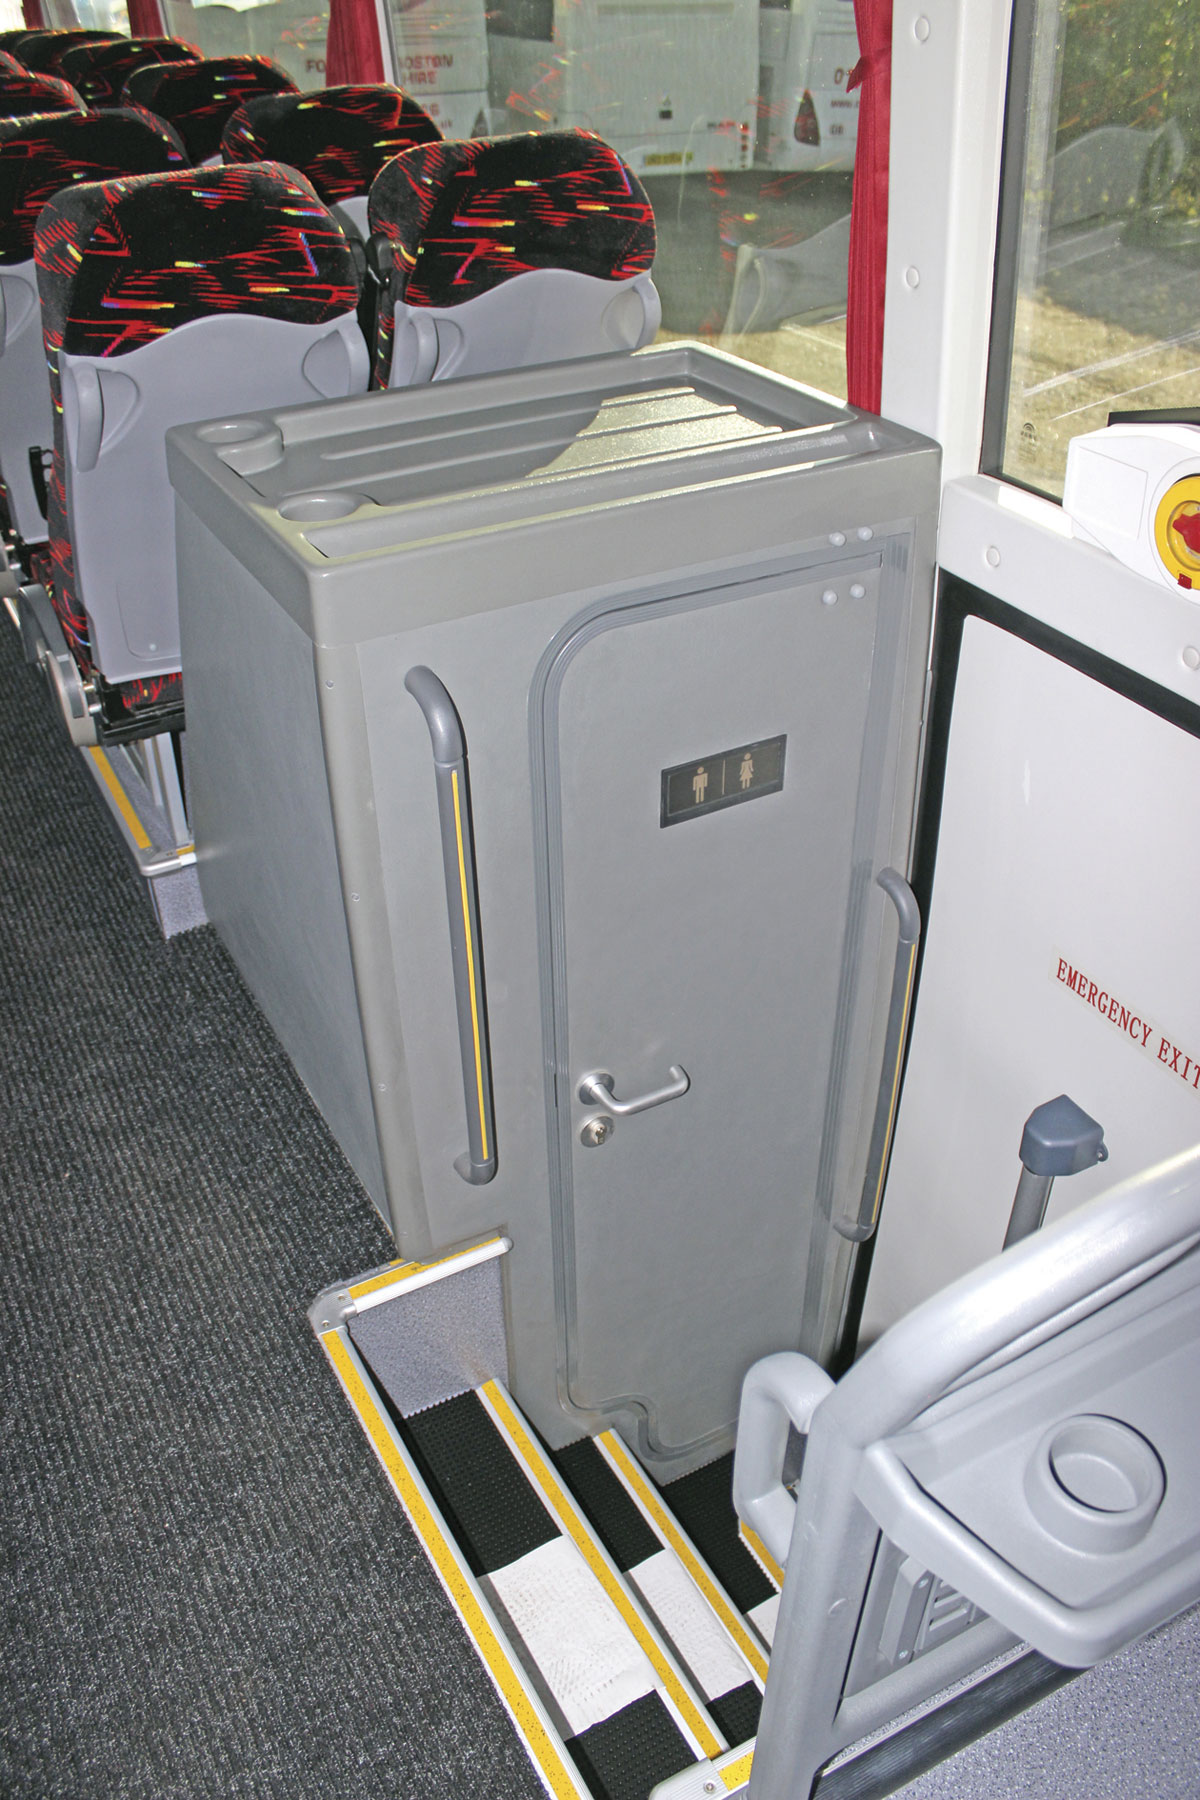 The centre continental door and toilet compartment is mounted two double seats nearer the rear of the coach